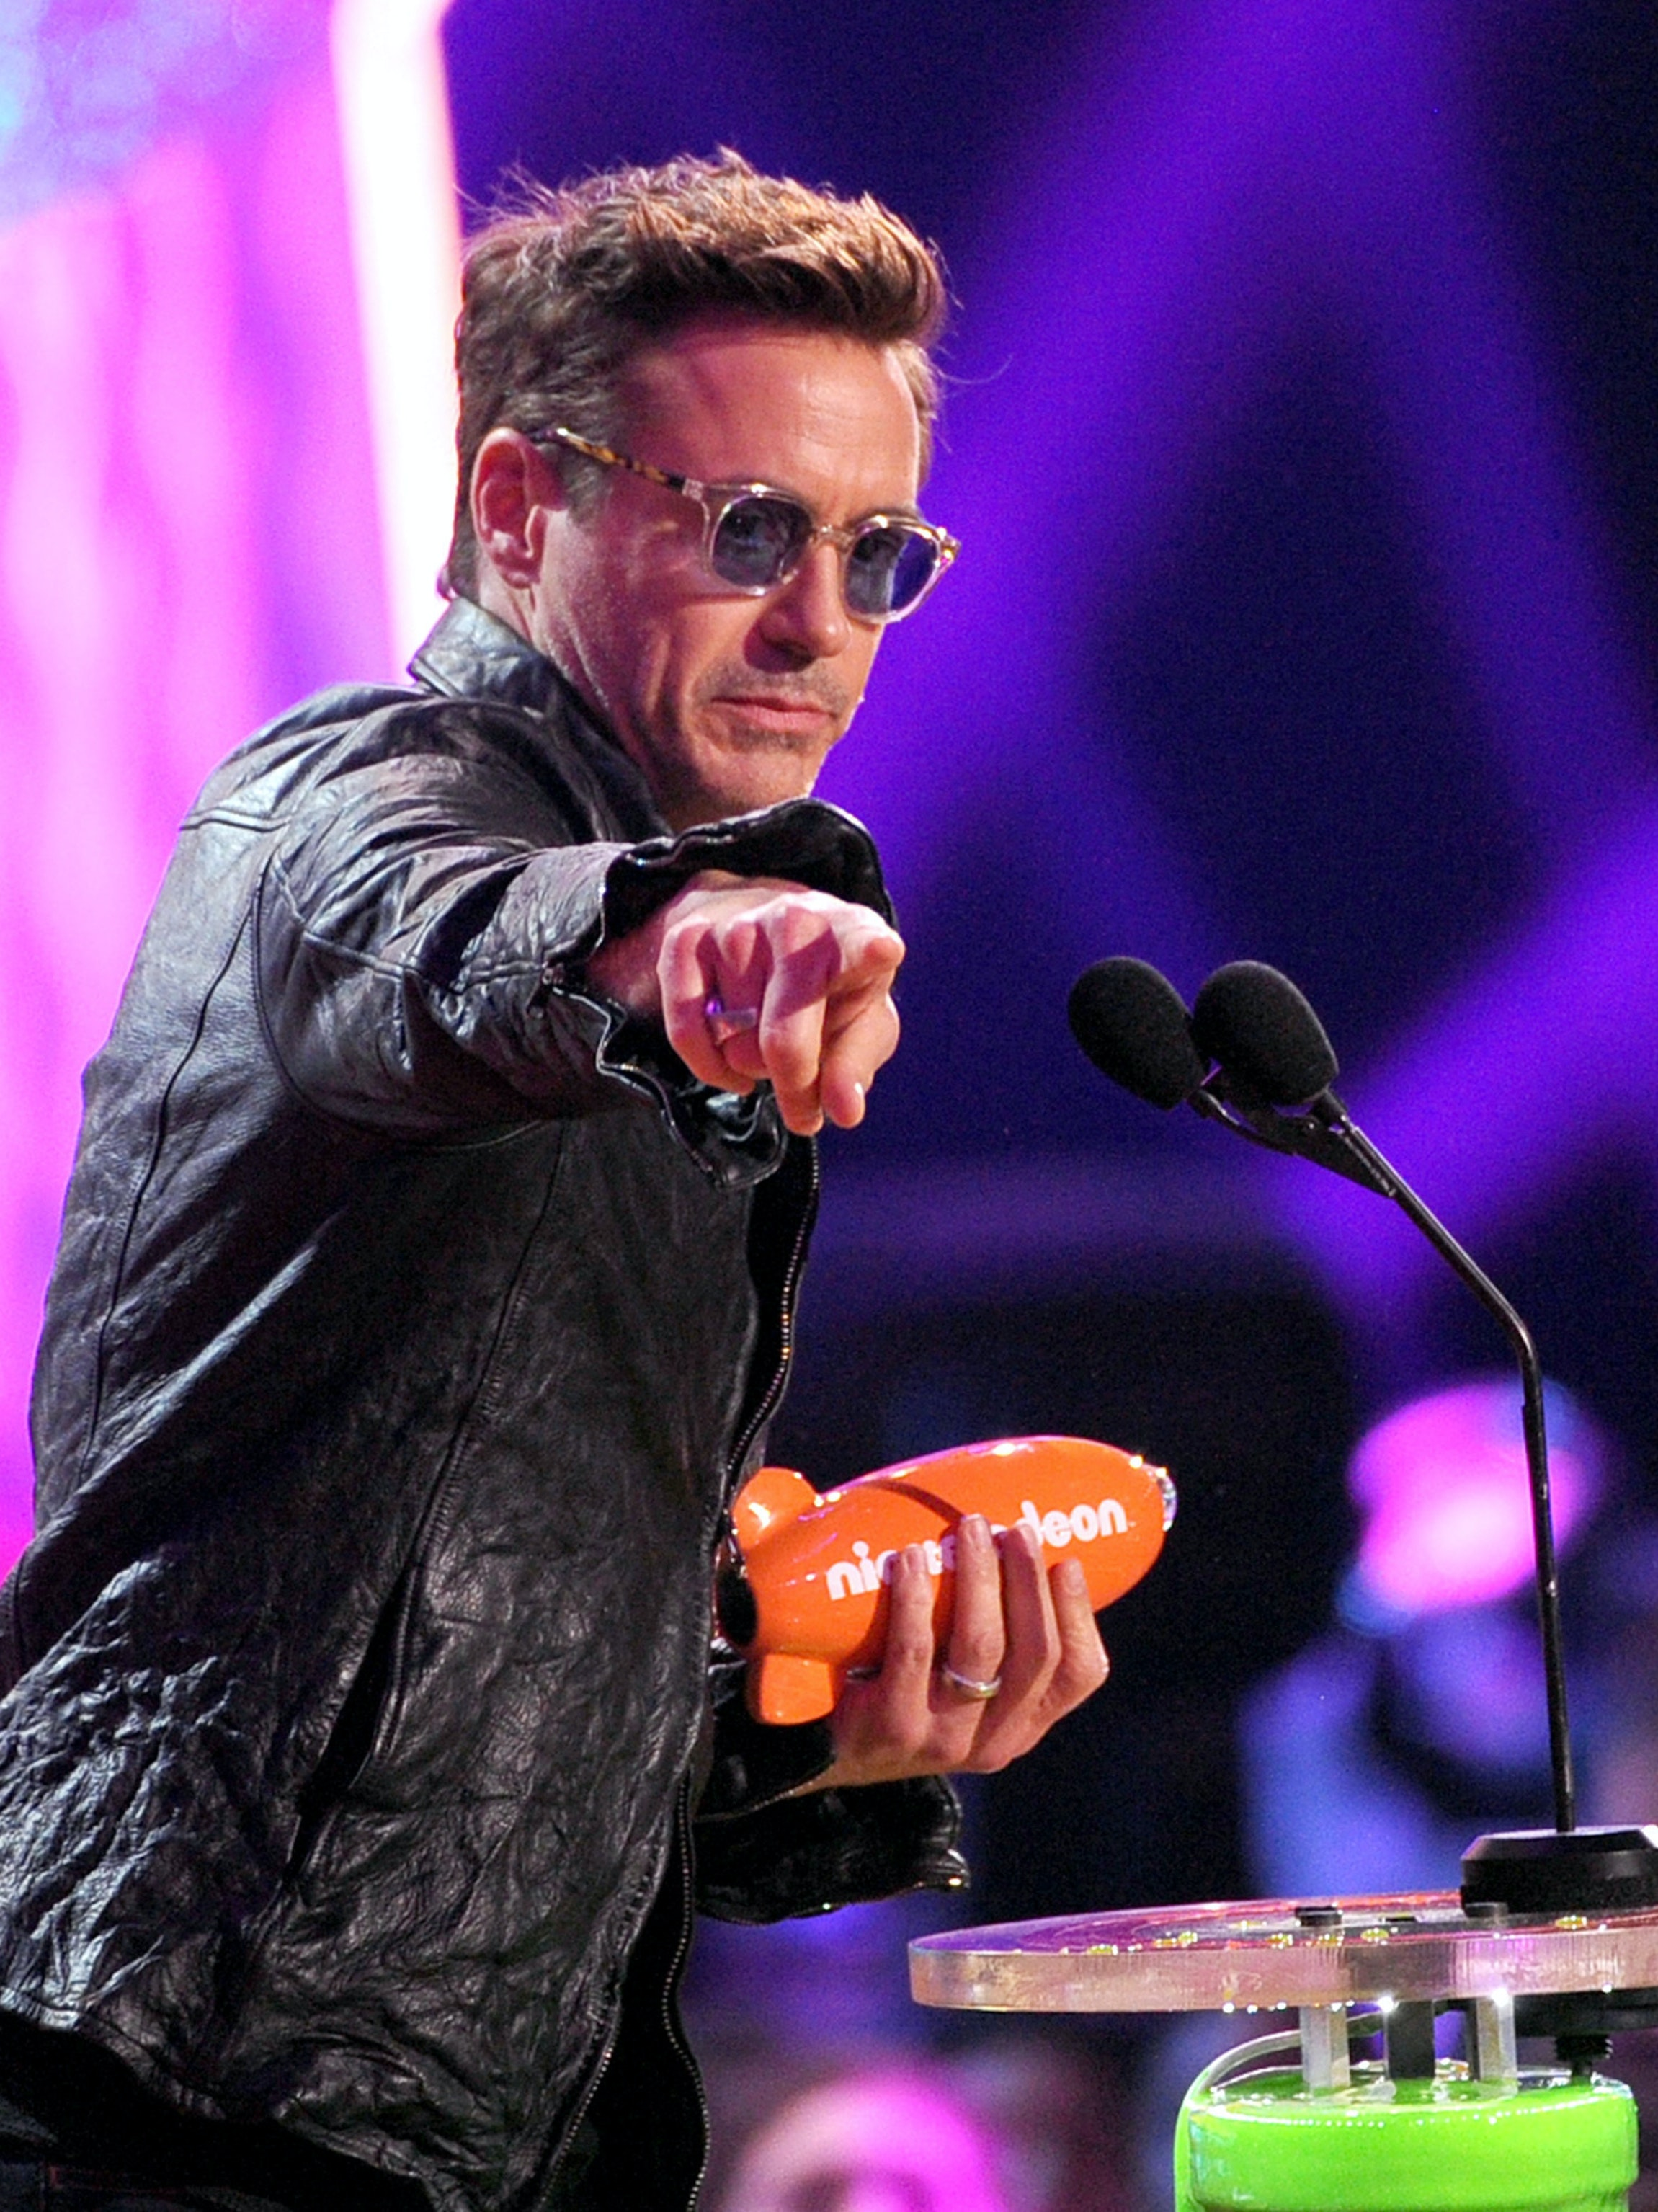 LOS ANGELES, CA - MARCH 29:  Actor Robert Downey Jr.,accepts the award for Favorite Male Butt Kicker at Nickelodeon's 27th Annual Kids' Choice Awards held at USC Galen Center on March 29, 2014 in Los Angeles, California.  (Photo by Kevin Winter/Getty Images)